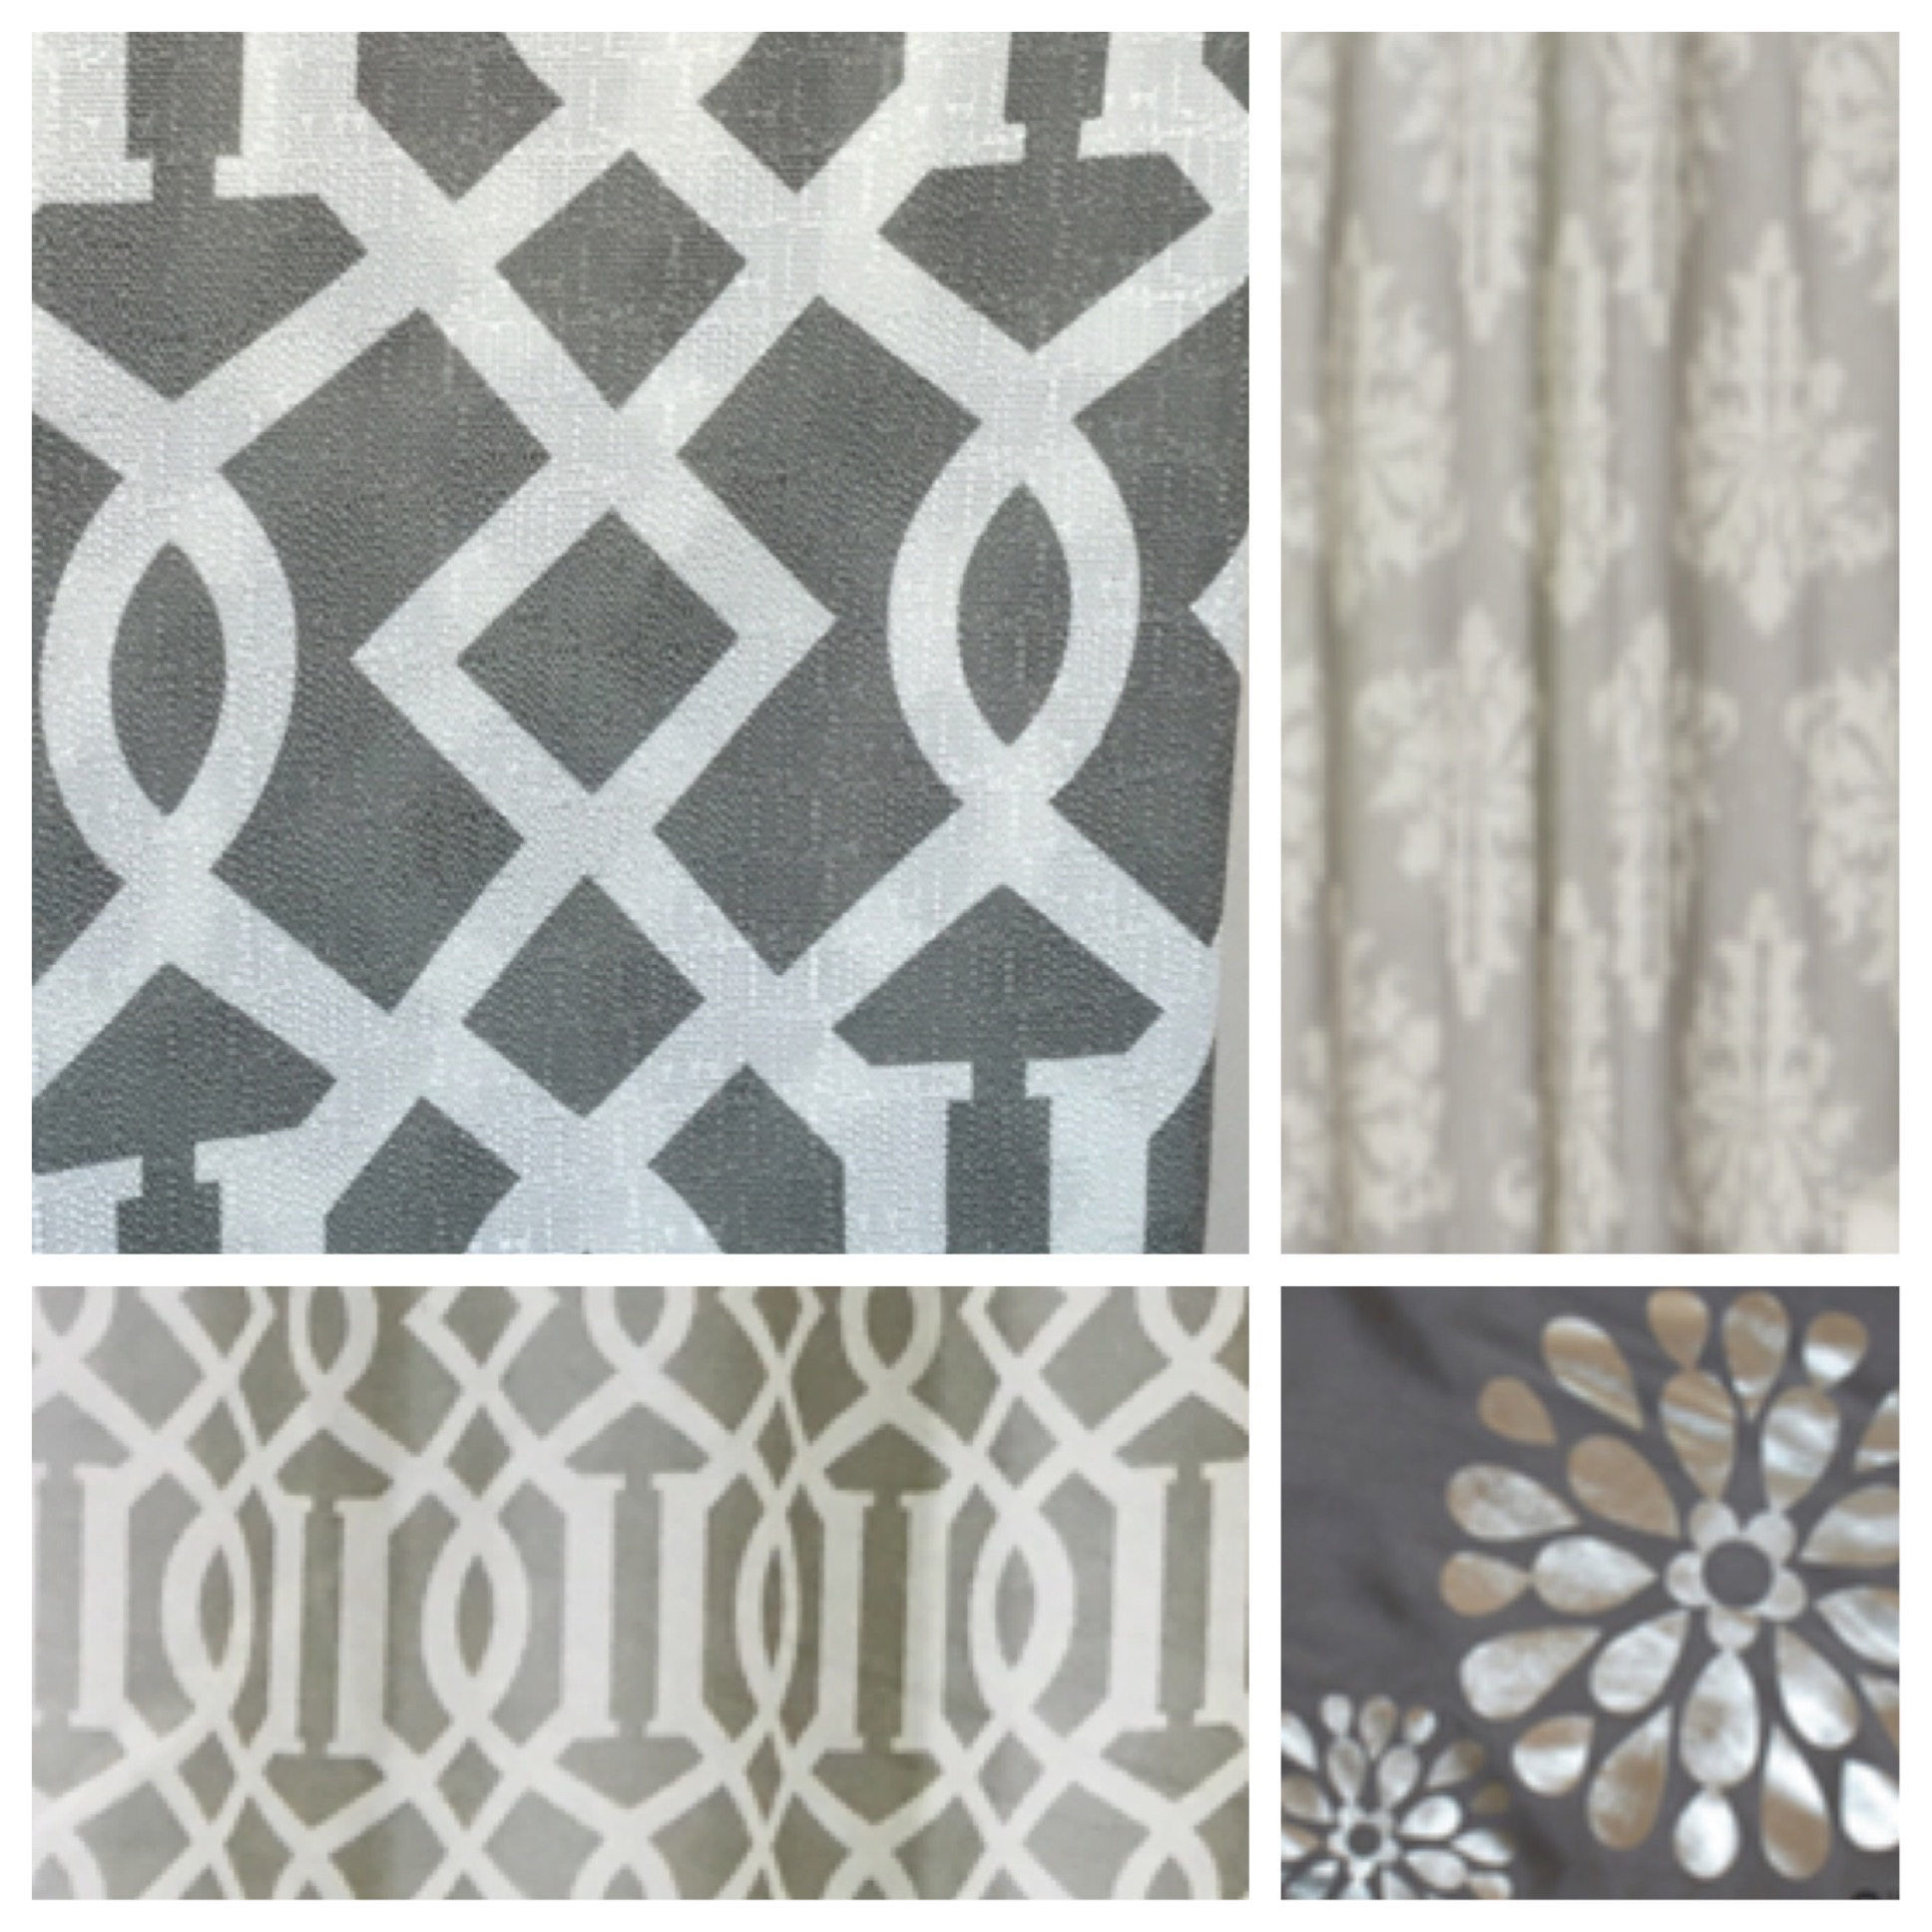 Fabric samples for residential build, Gustafson Farms